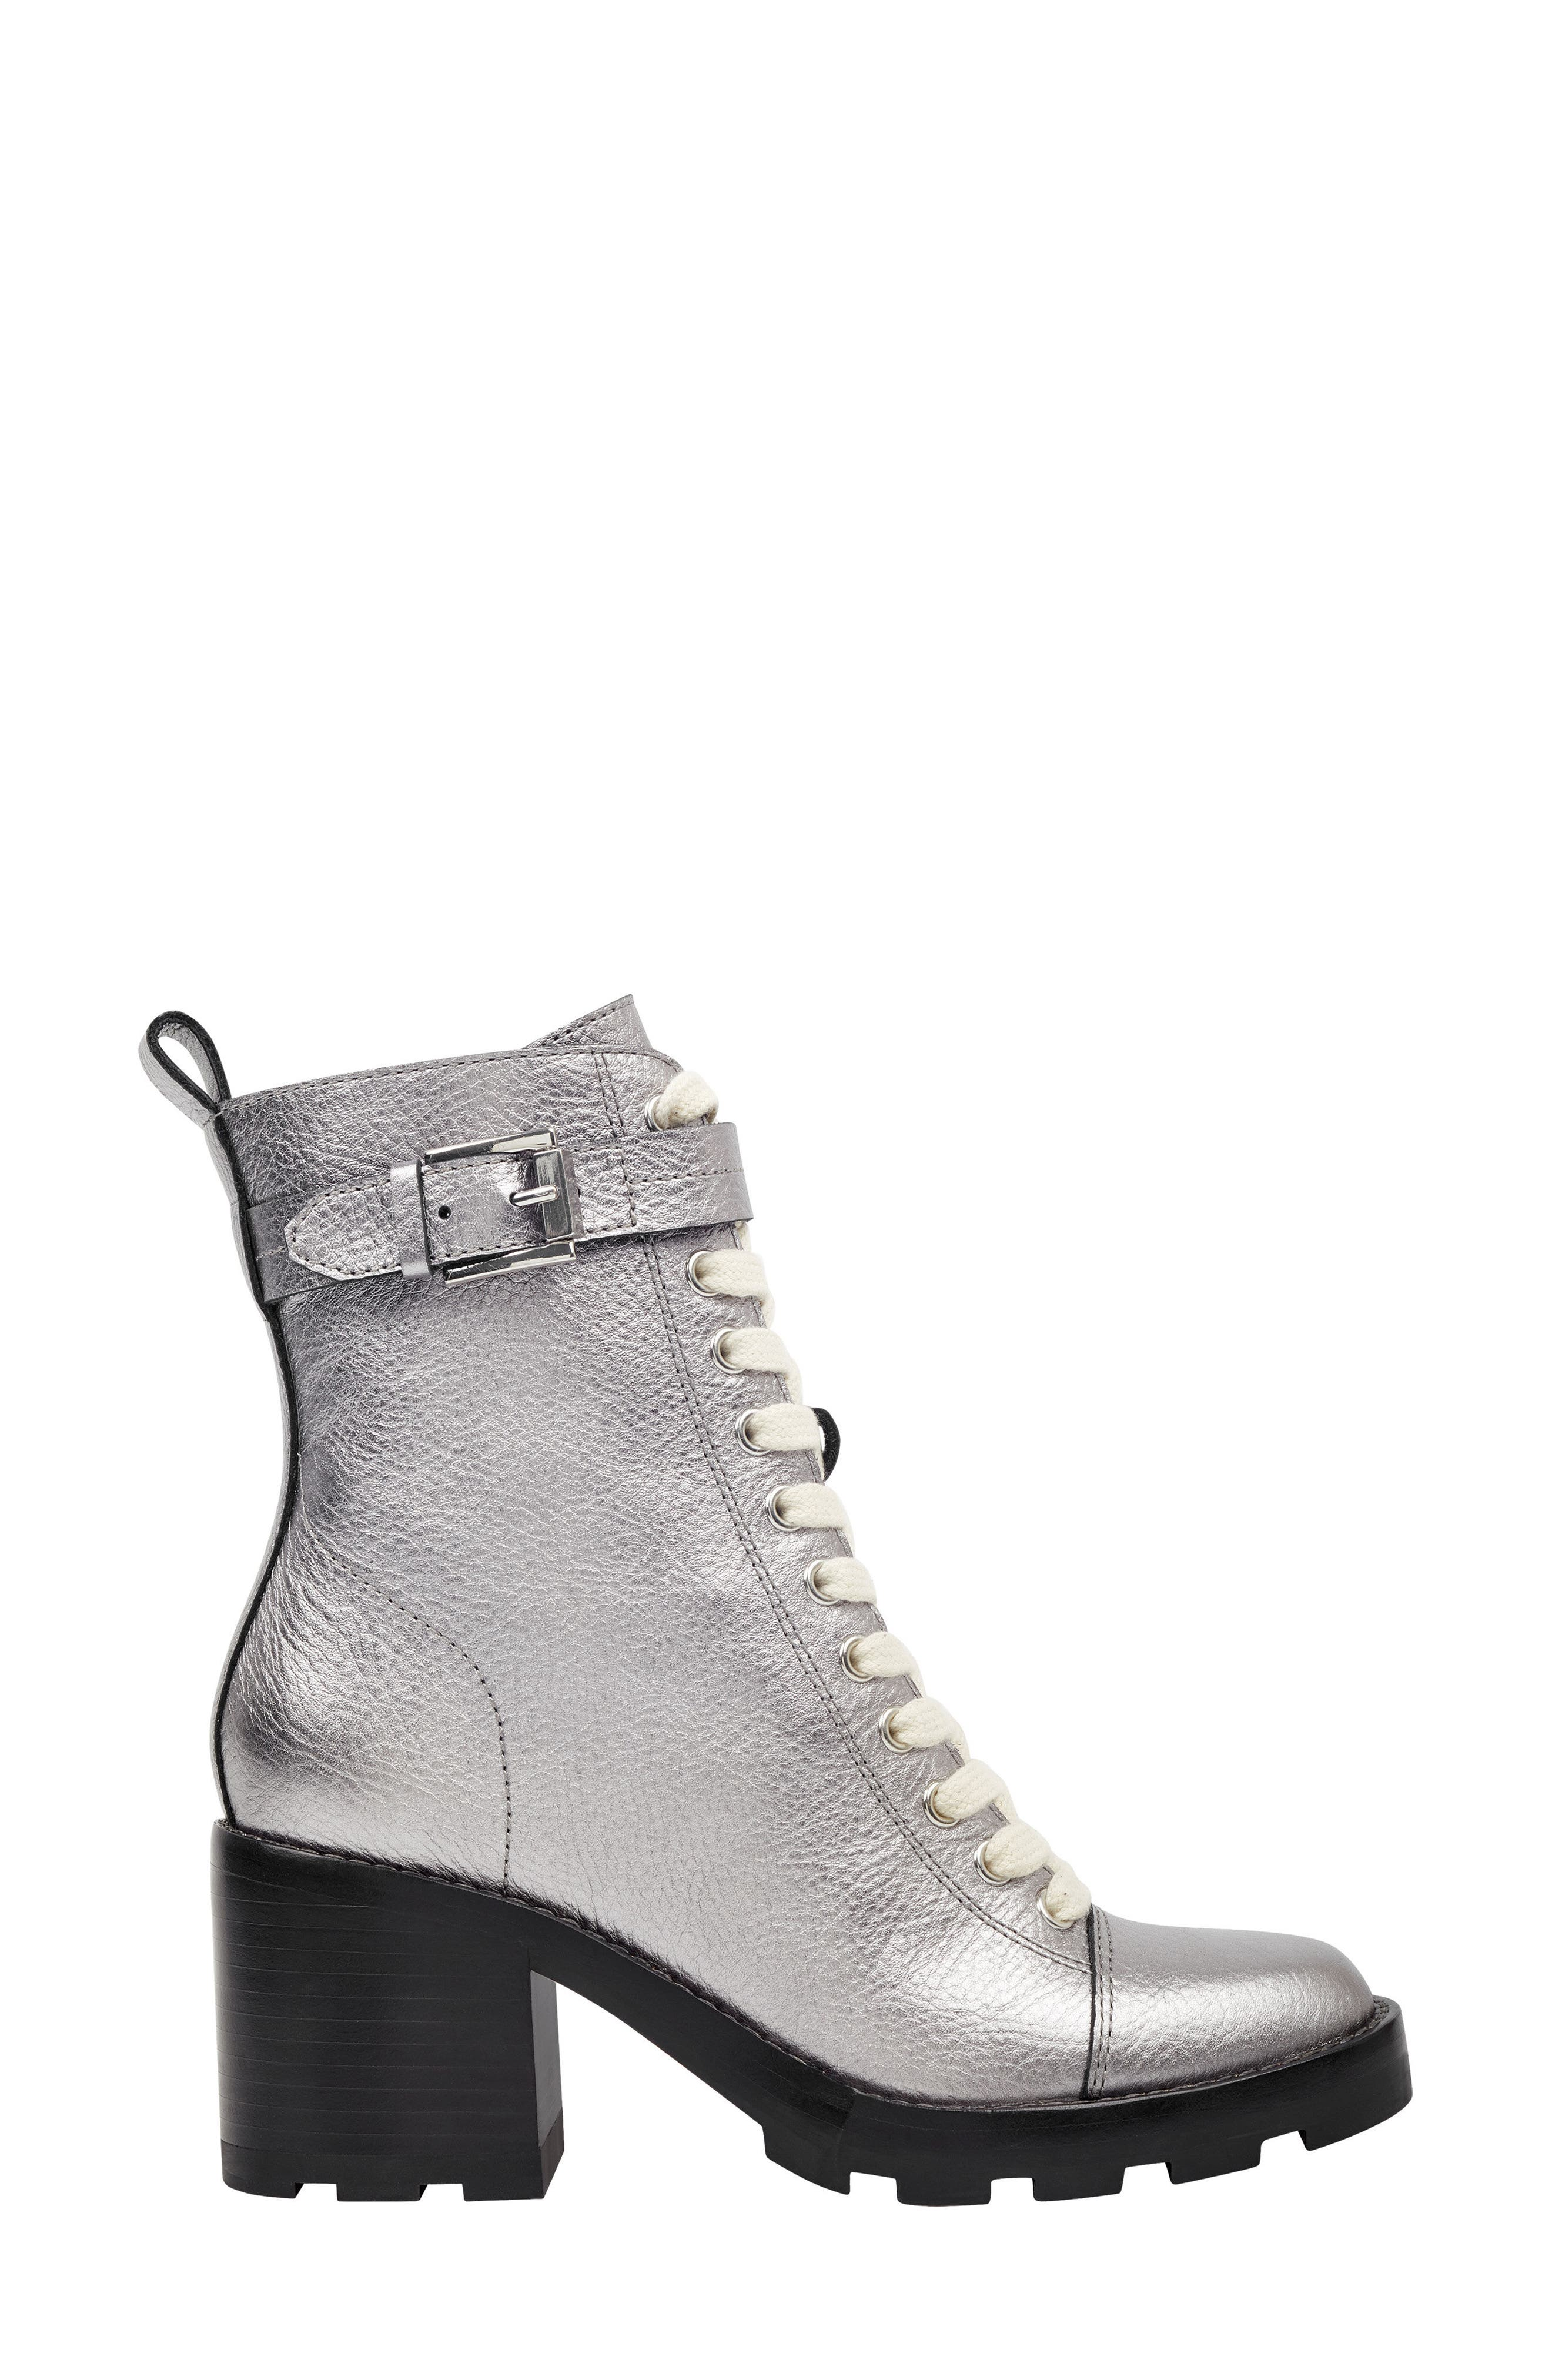 Waren Combat Boot,                             Alternate thumbnail 3, color,                             PEWTER LEATHER